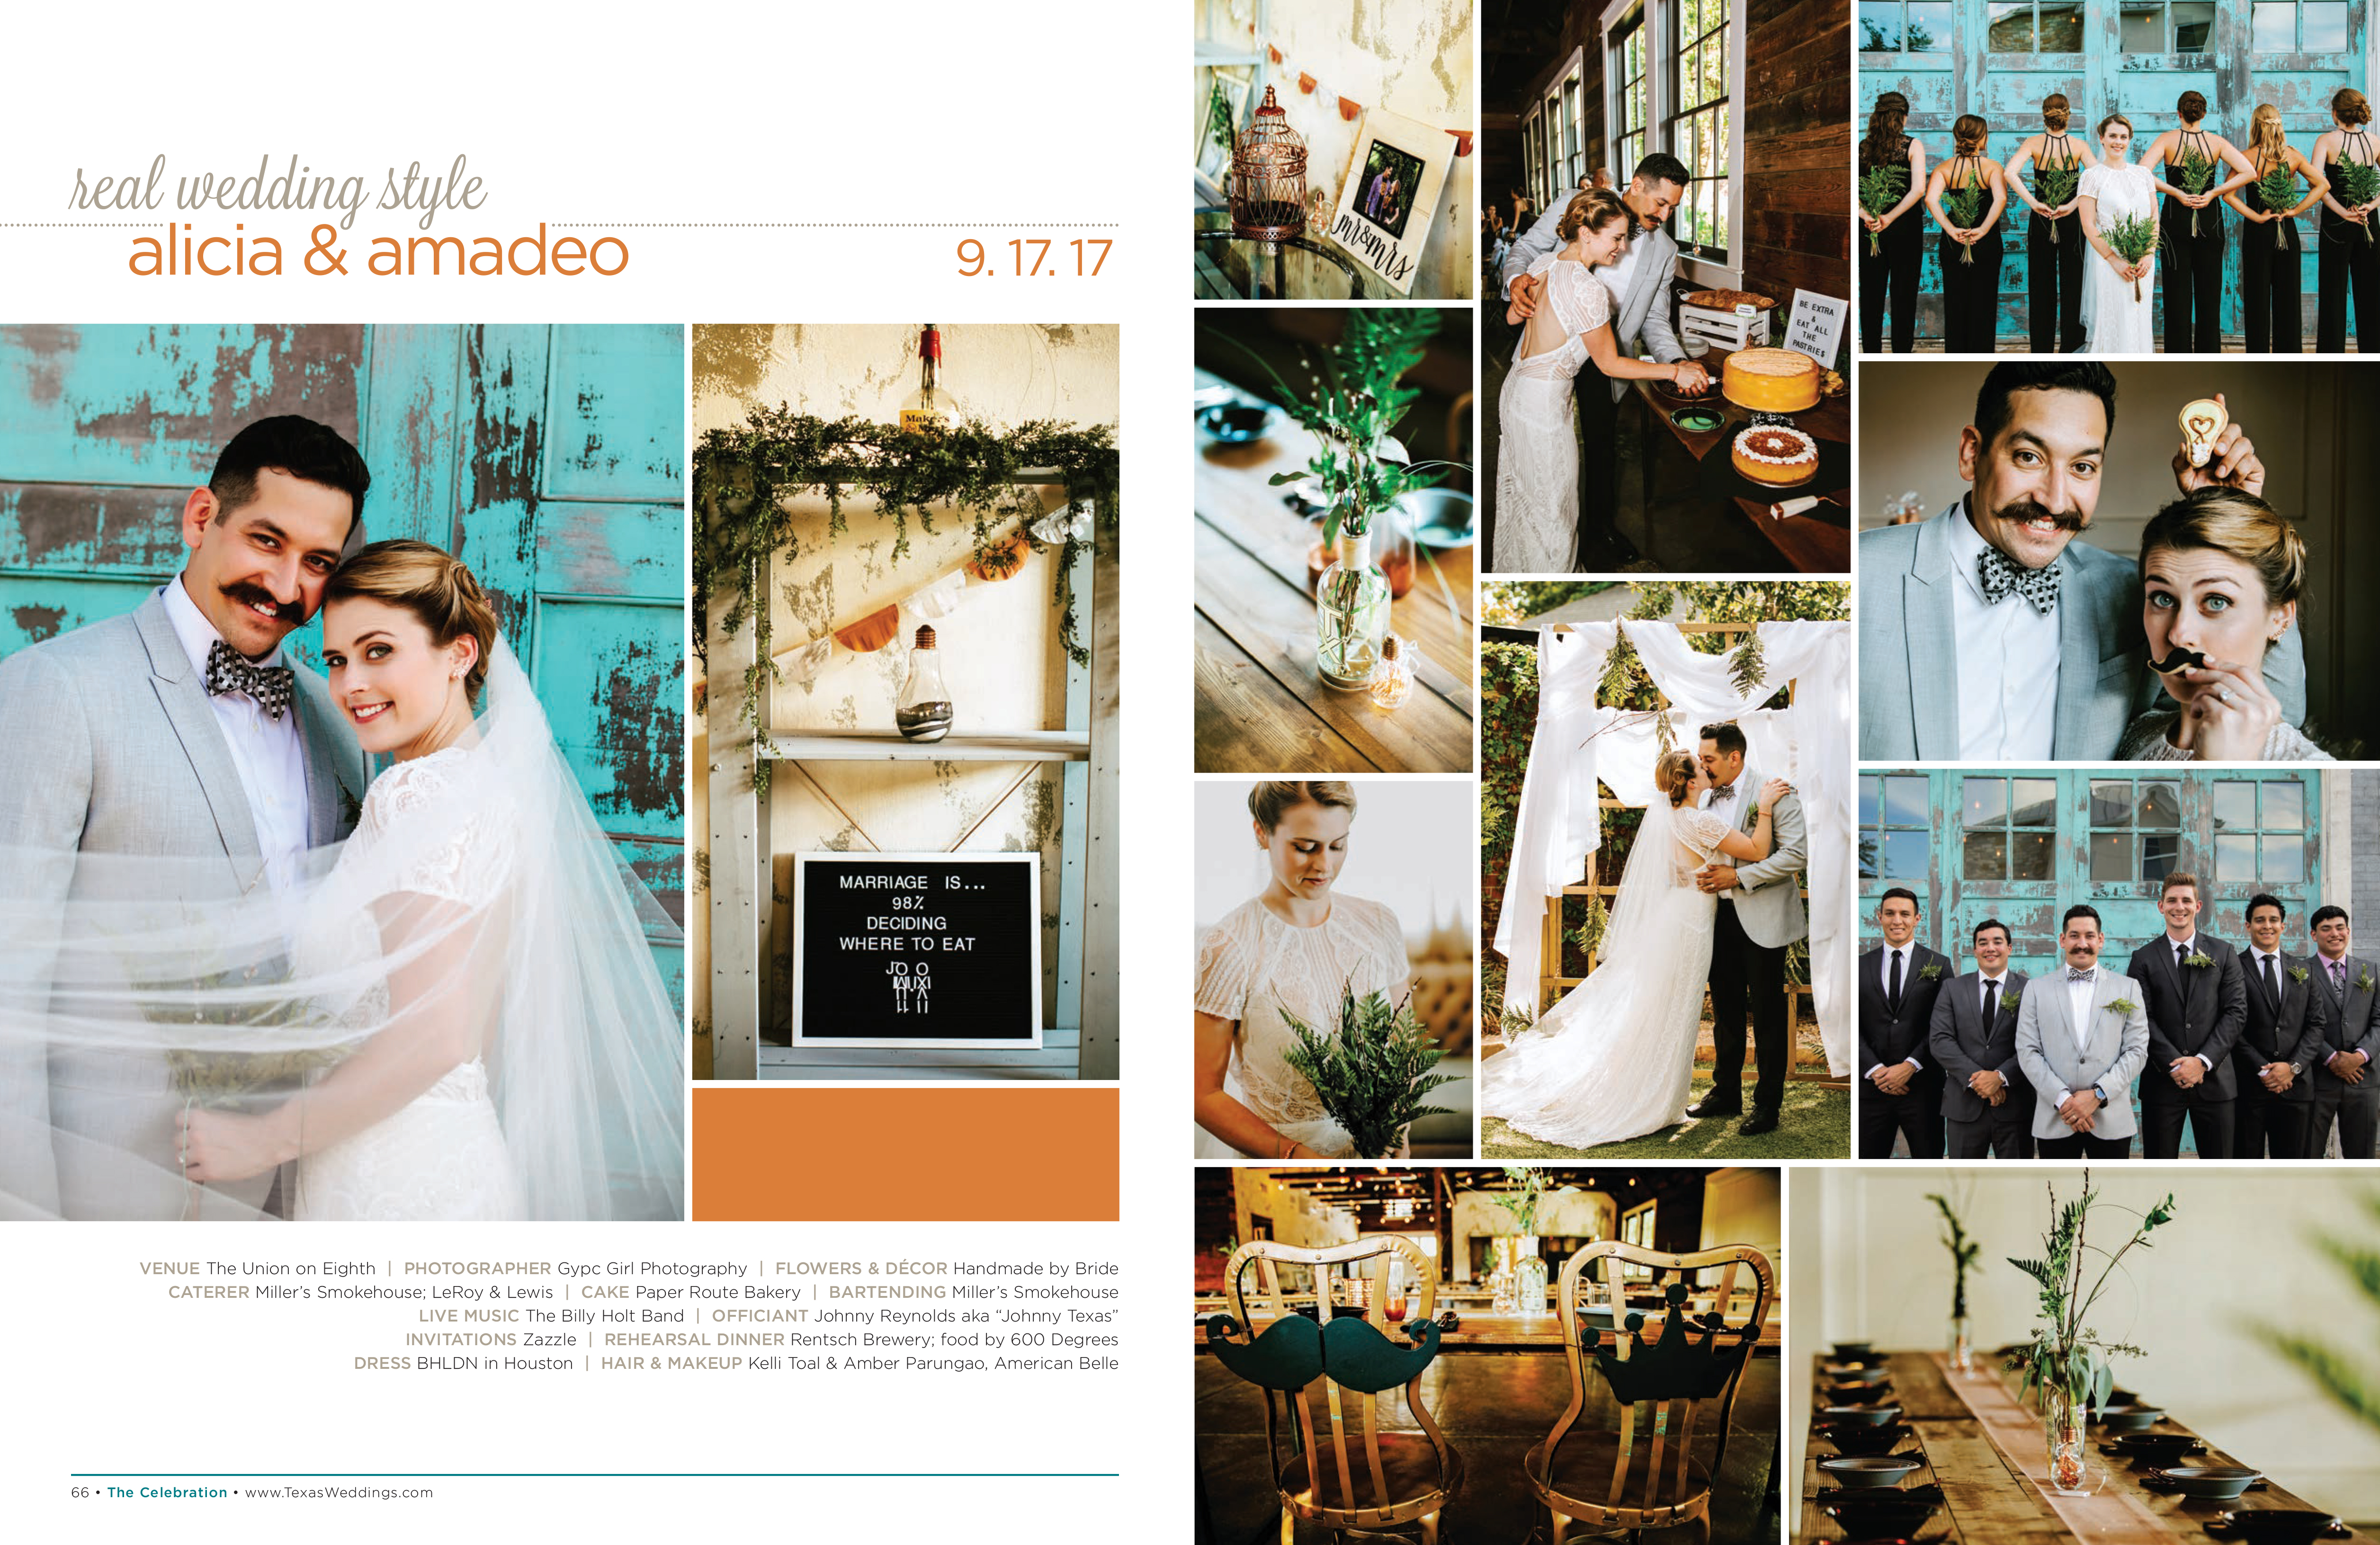 Alicia & Amadeo in their Real Wedding Page in the Spring/Summer 2018 Texas Wedding Guide